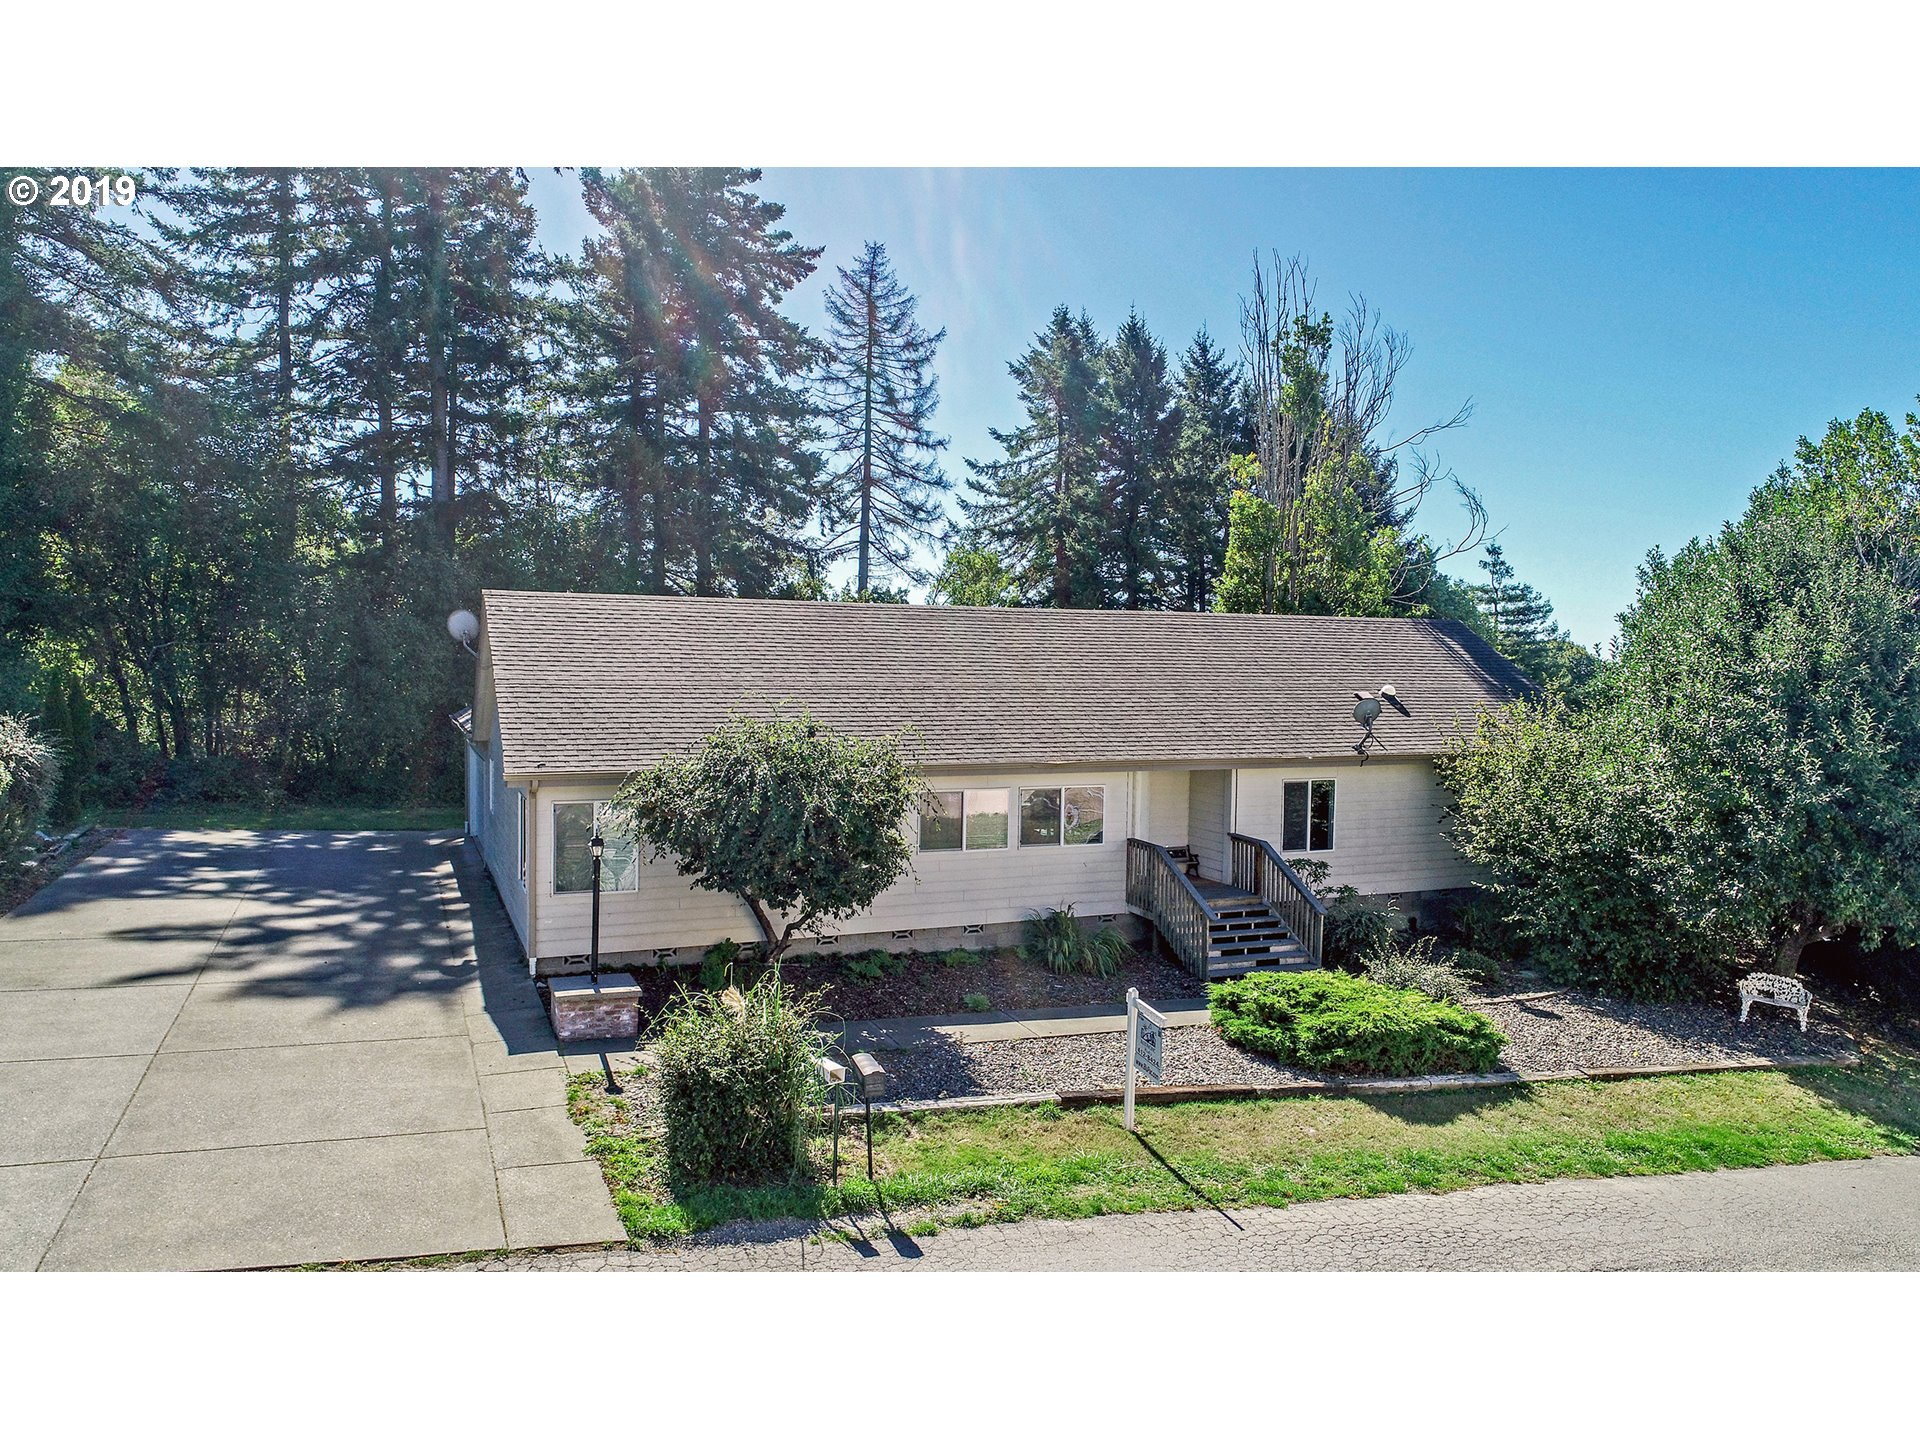 Brookings, OR 0 Bedroom Home For Sale